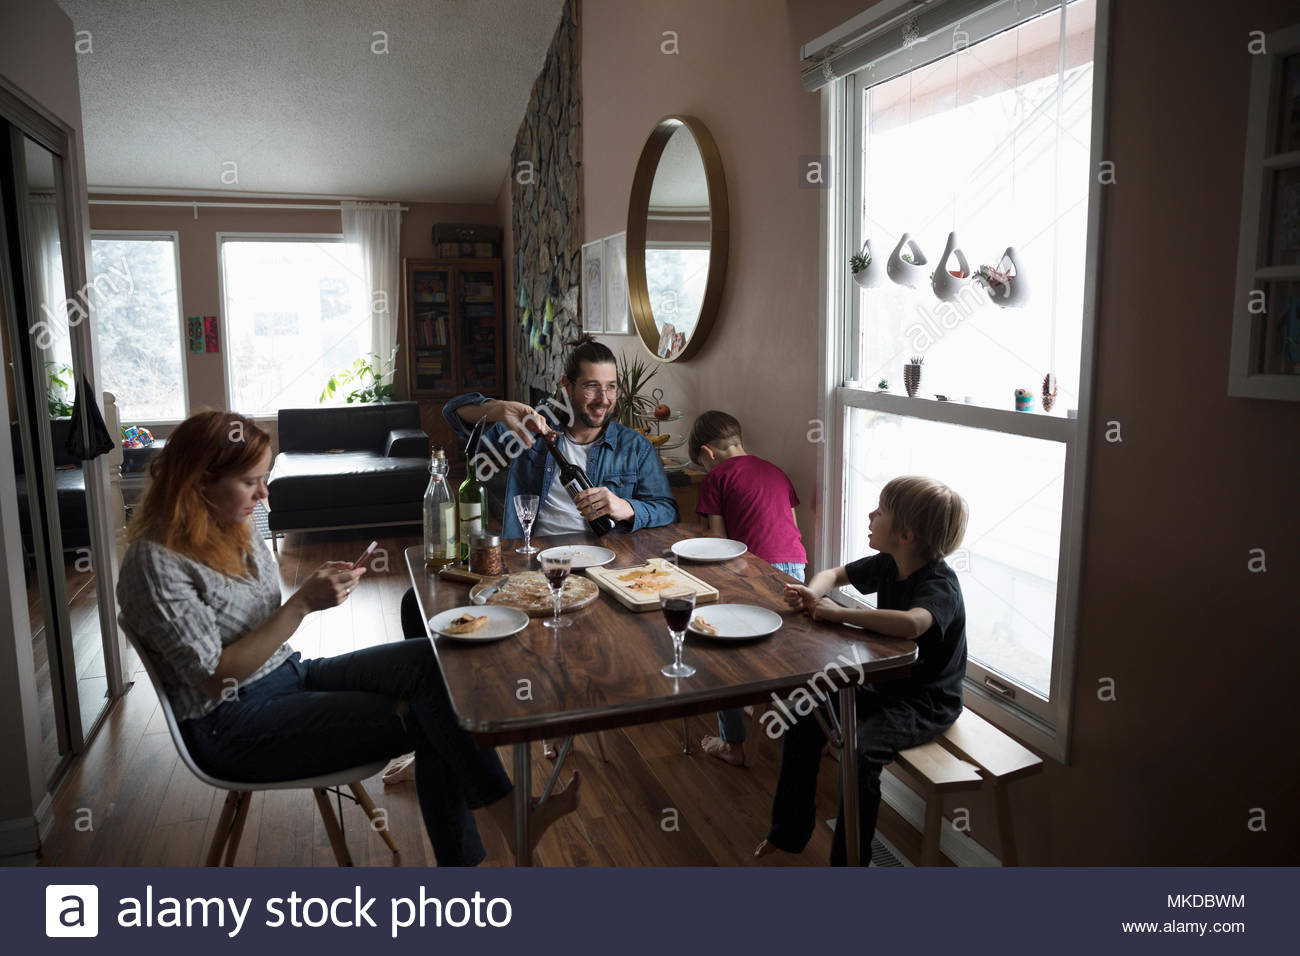 Family eating pizza at dining table - Stock Image